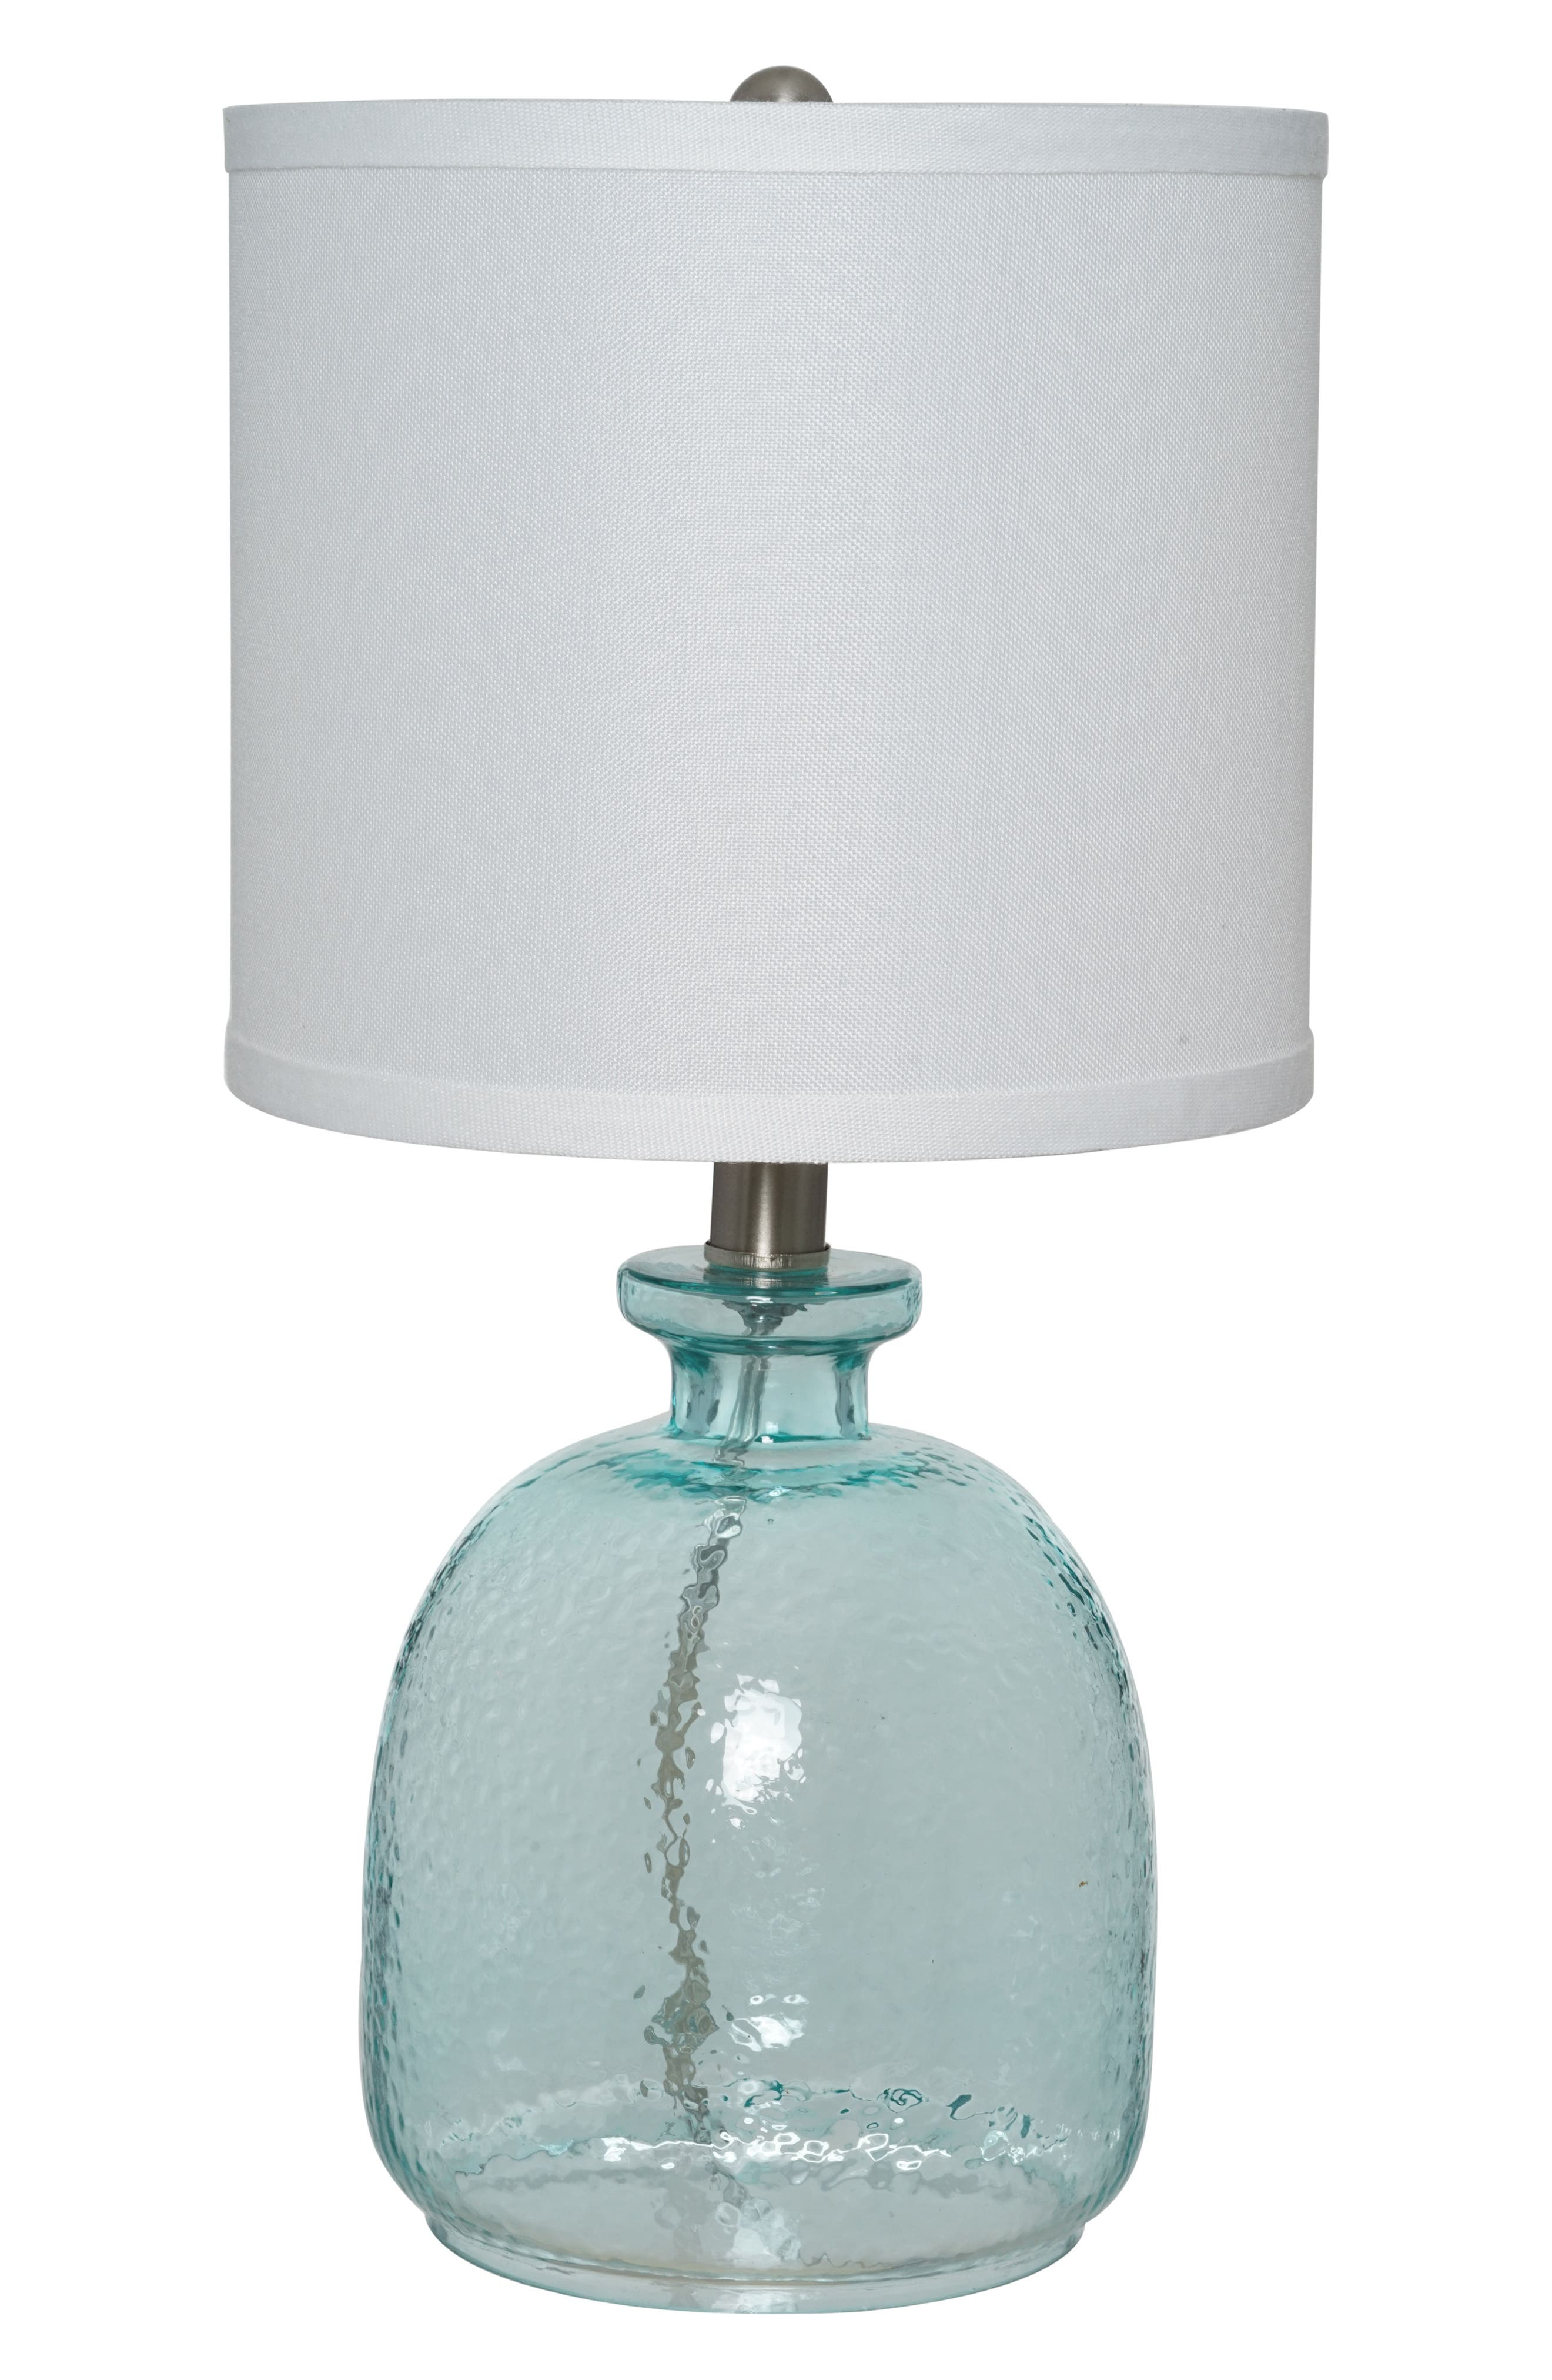 Ocean Glass Accent Lamp,                             Main thumbnail 1, color,                             400